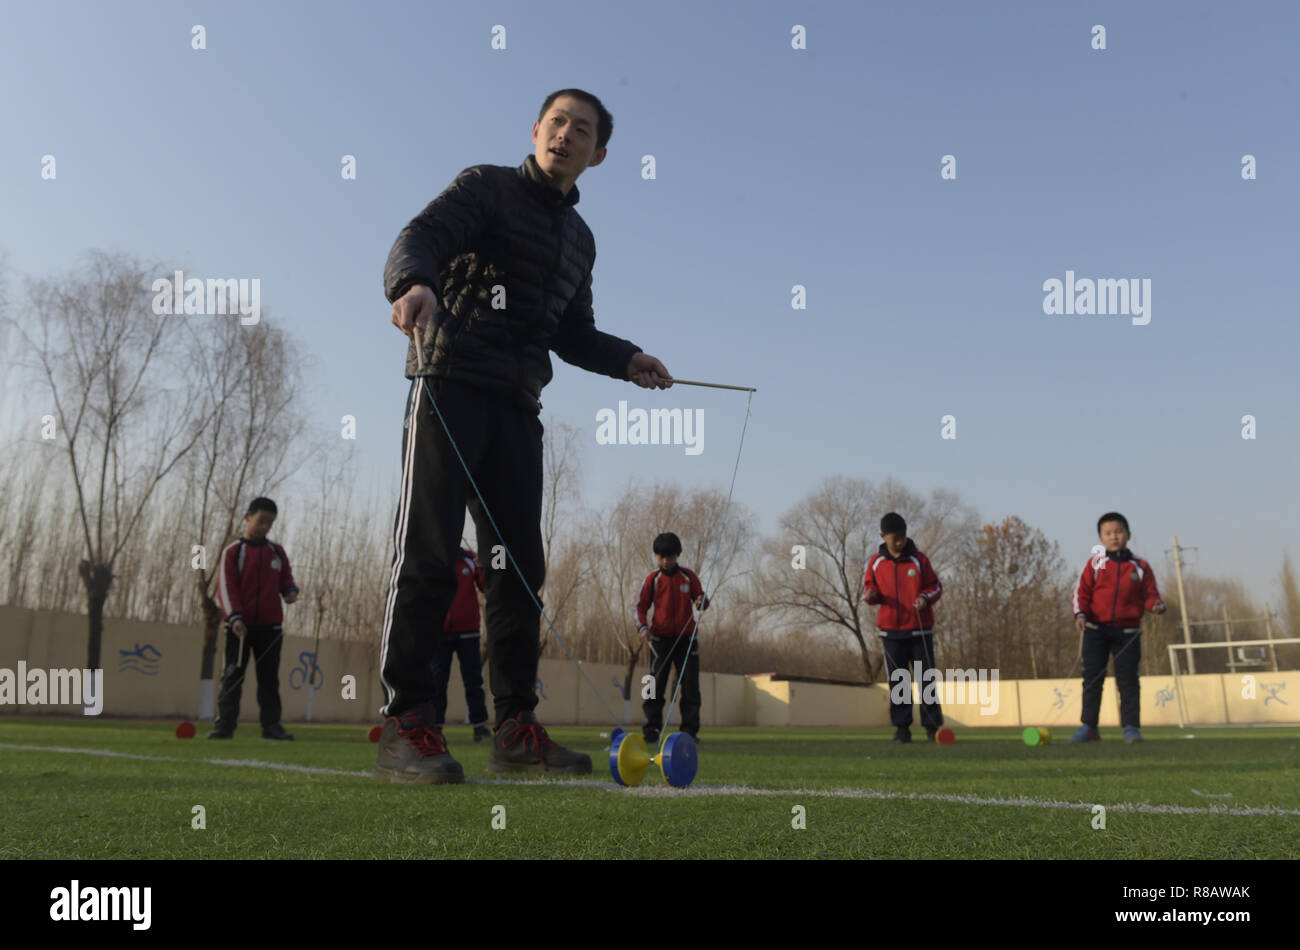 Gu'an, China's Hebei Province. 14th Dec, 2018. Students play diabolo under the guidance of a teacher at Nanzhaogezhuang primary school in Gu'an County, north China's Hebei Province, Dec. 14, 2018. Various extracurricular classes are provided in Nanzhaogezhuang primary school to enrich the school life of students. Credit: Lu Peng/Xinhua/Alamy Live News - Stock Image